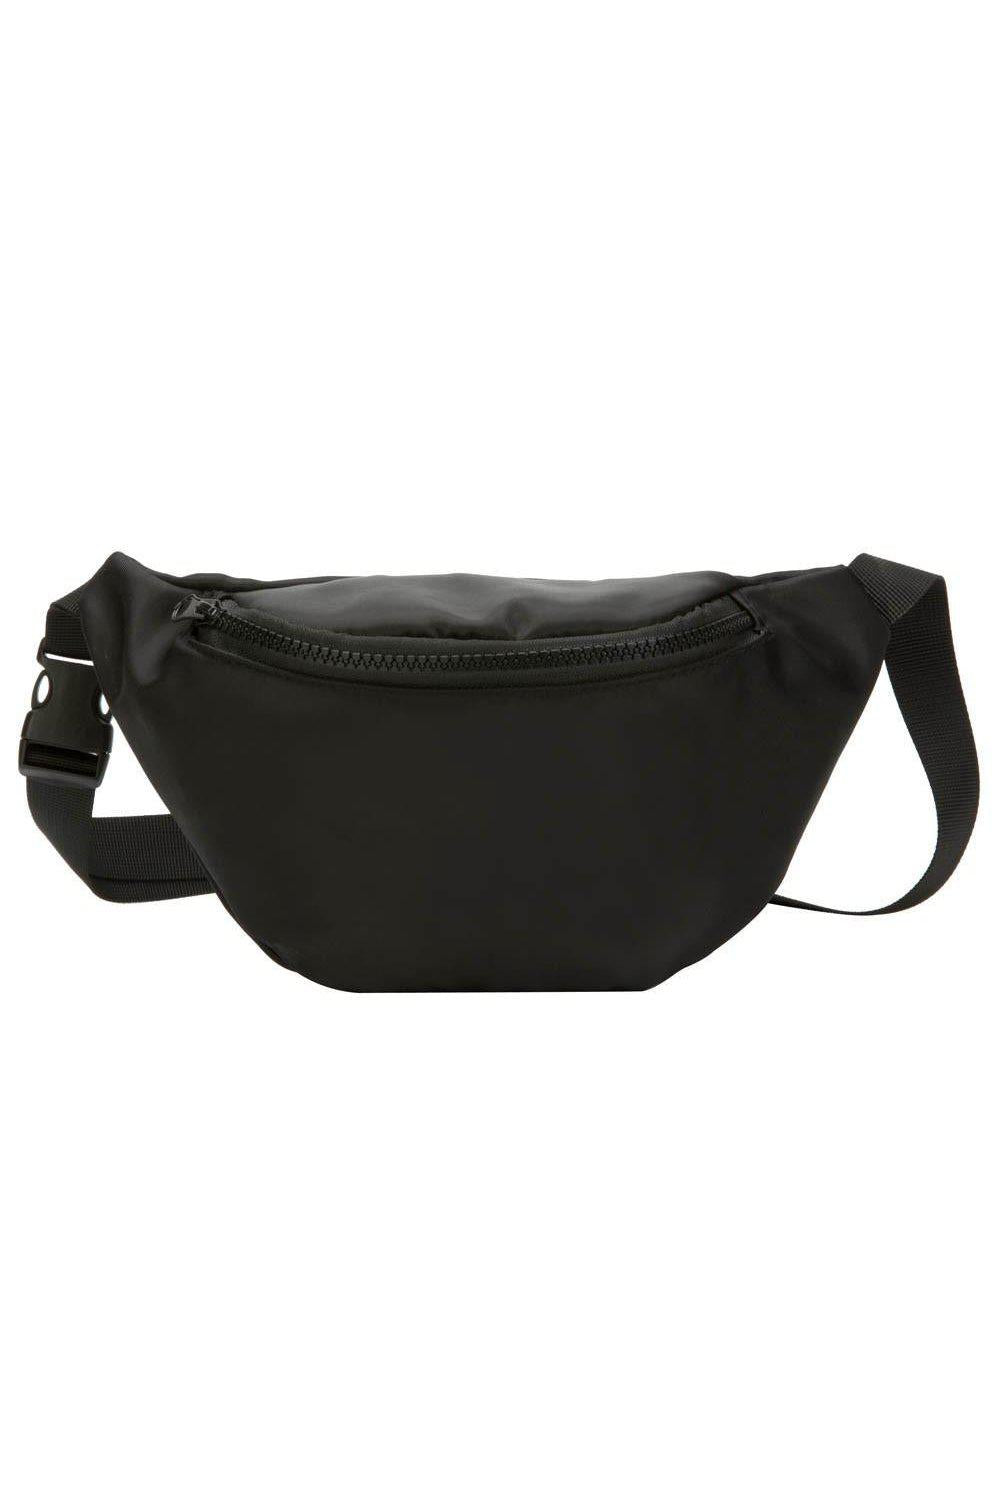 Watches - Waist Bag Black